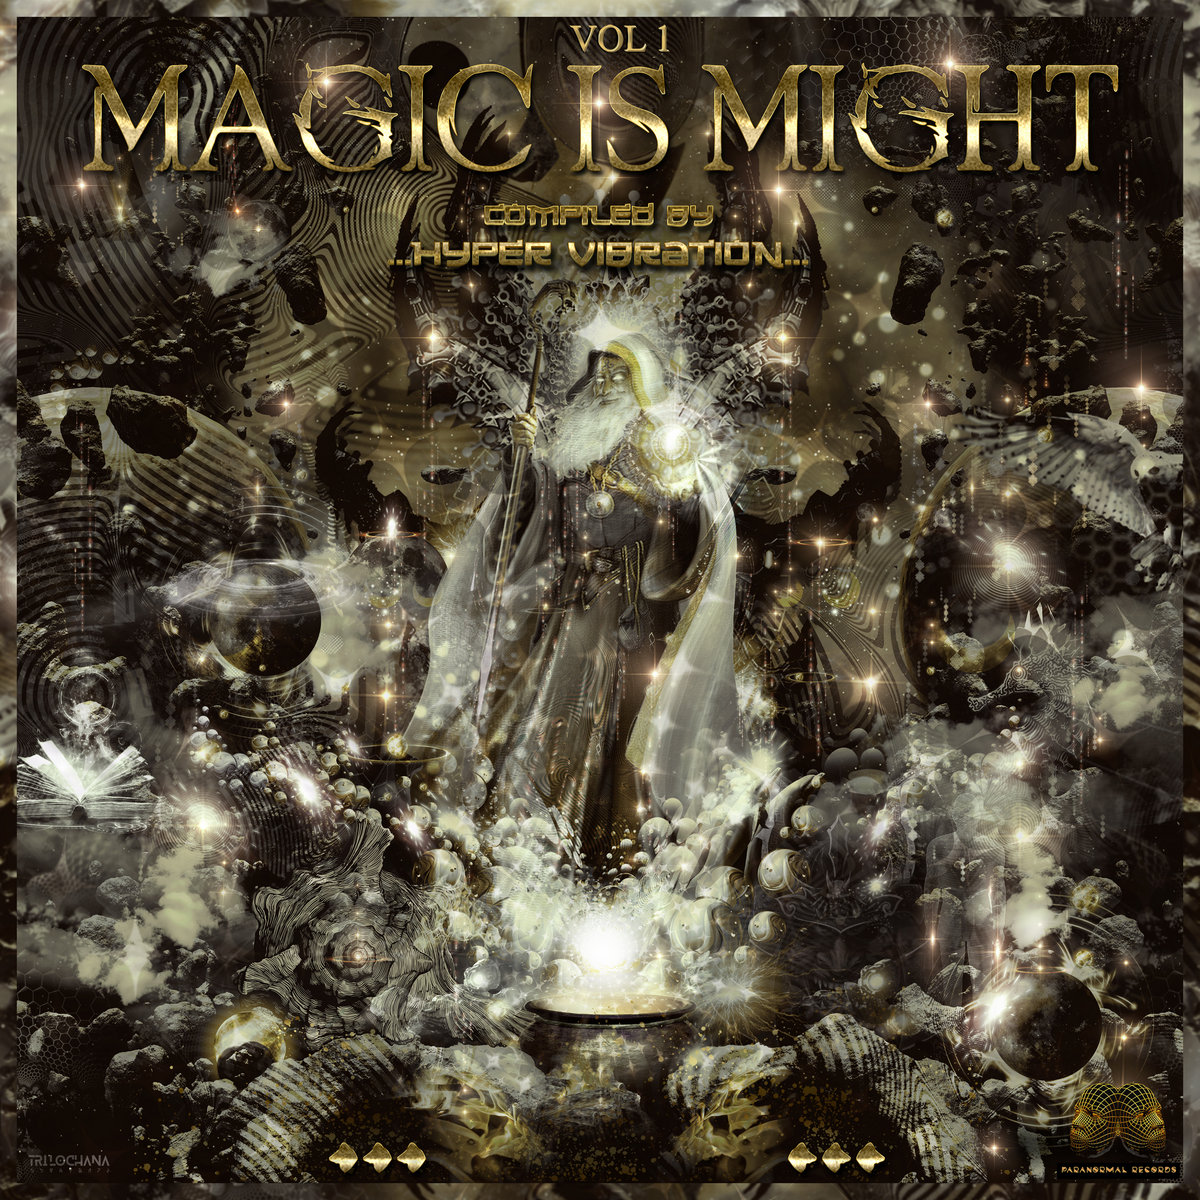 Various Performers - Magic is Might Vol. 1 (2021)